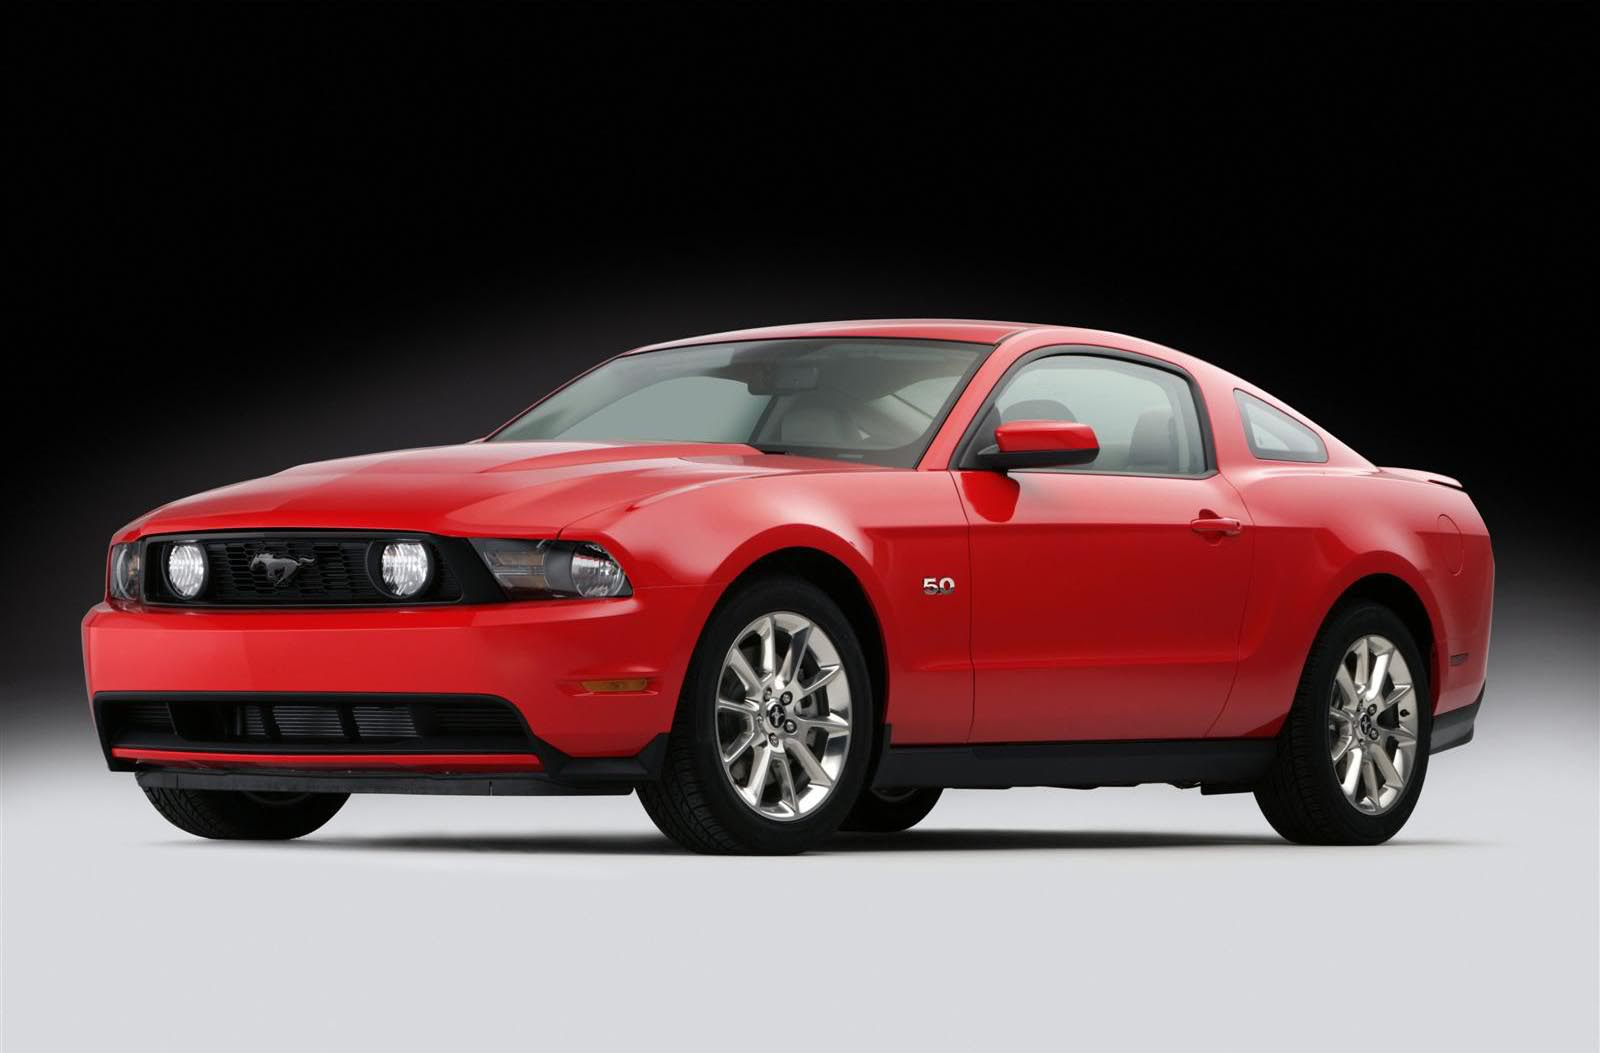 5 0 liter 2011 ford mustang gt american muscle car guide. Black Bedroom Furniture Sets. Home Design Ideas